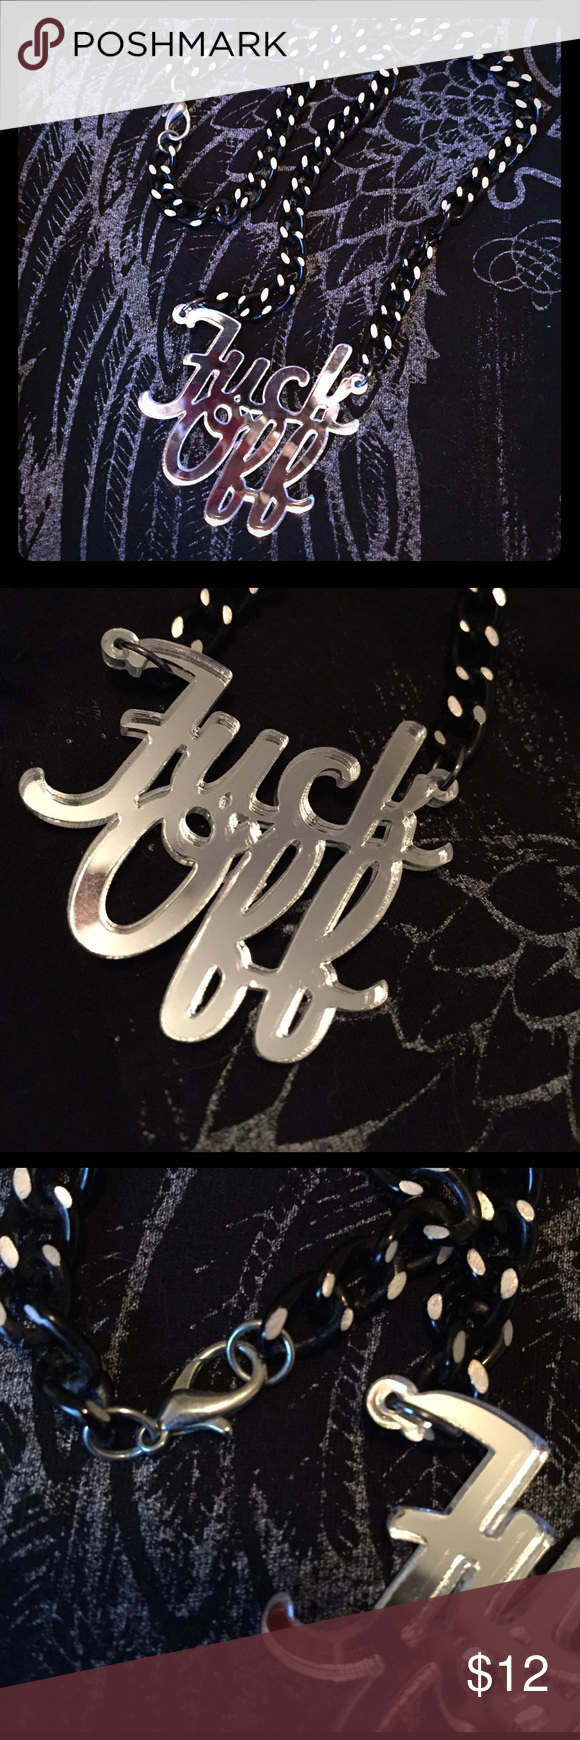 """Custom """"F%@& OFF"""" mirror necklace One of a kind """"F%@$ OFF"""" mirror emblem on a dual colored chain (black/chrome) with a lobster clasp. ☠️ Very much a statement piece for any bad girl look☠️ Jewelry Necklaces"""